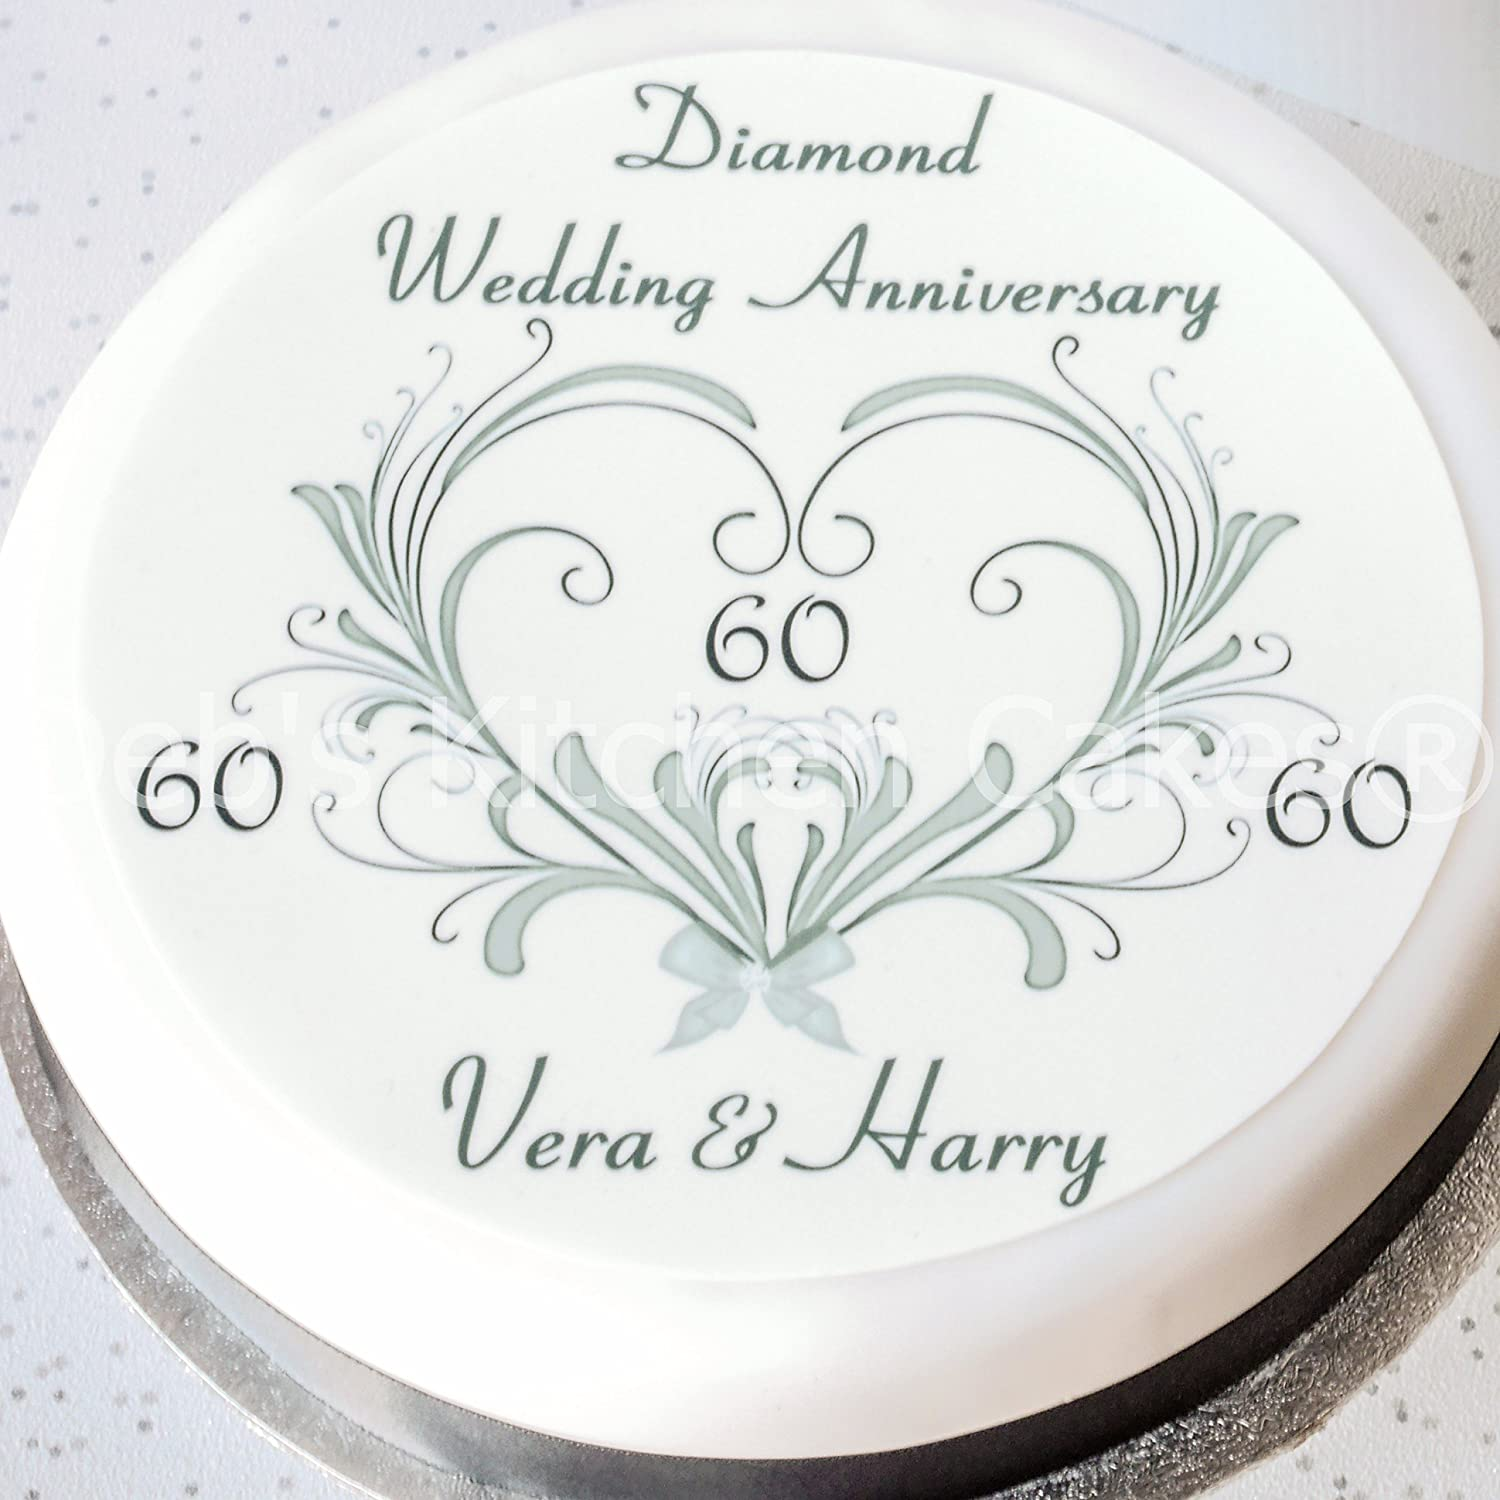 Diamond wedding cake topper personalised edible icing 75 diamond wedding cake topper personalised edible icing 75 19cm round 60th wedding anniversary debs kitchen cakes amazon kitchen home kristyandbryce Choice Image